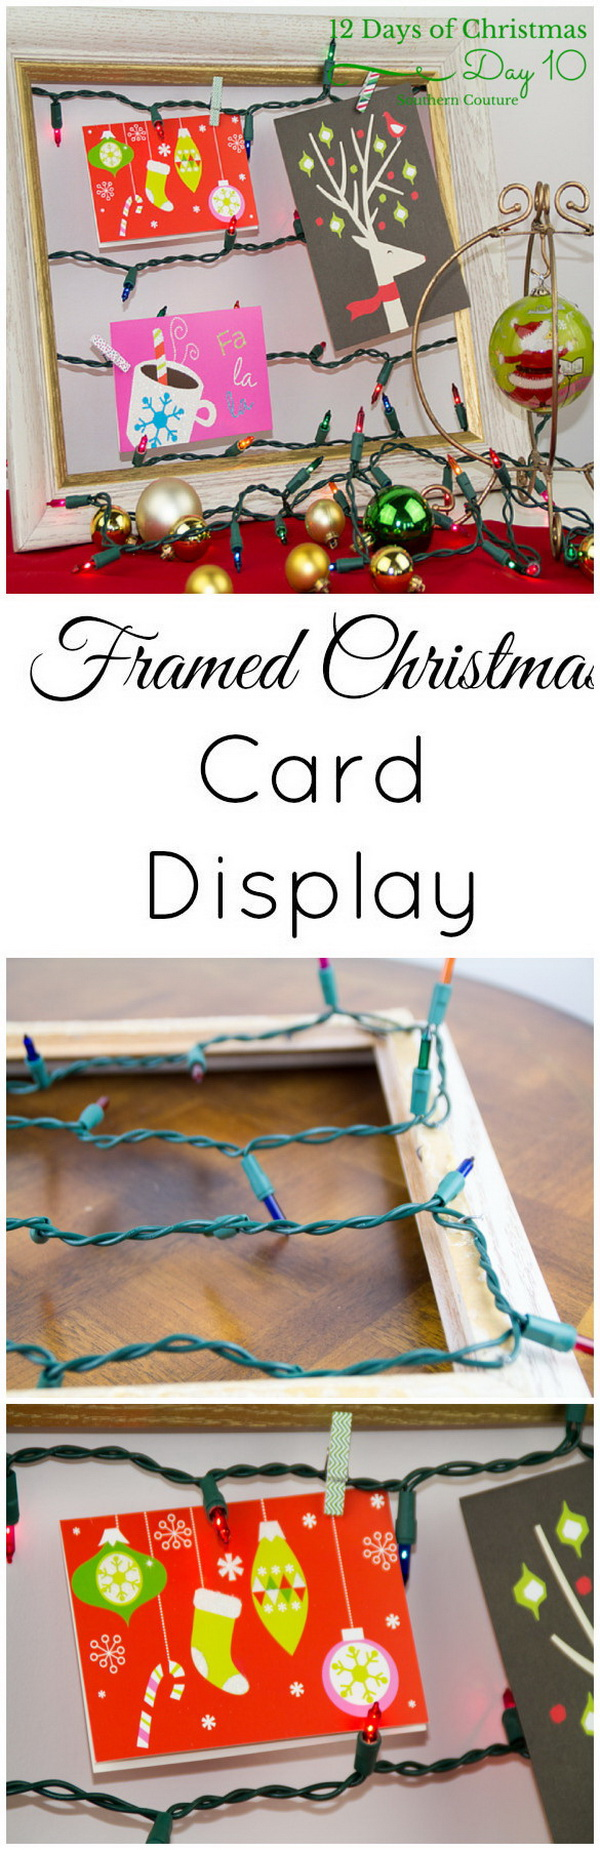 Make your home look festive for less this holiday season with easy DIY dollar store Christmas decor ideas. Wreaths, candles, centerpieces, wall art, ornaments, vases, gifts and more! Framed Christmas Card Display With String Christmas Lights.